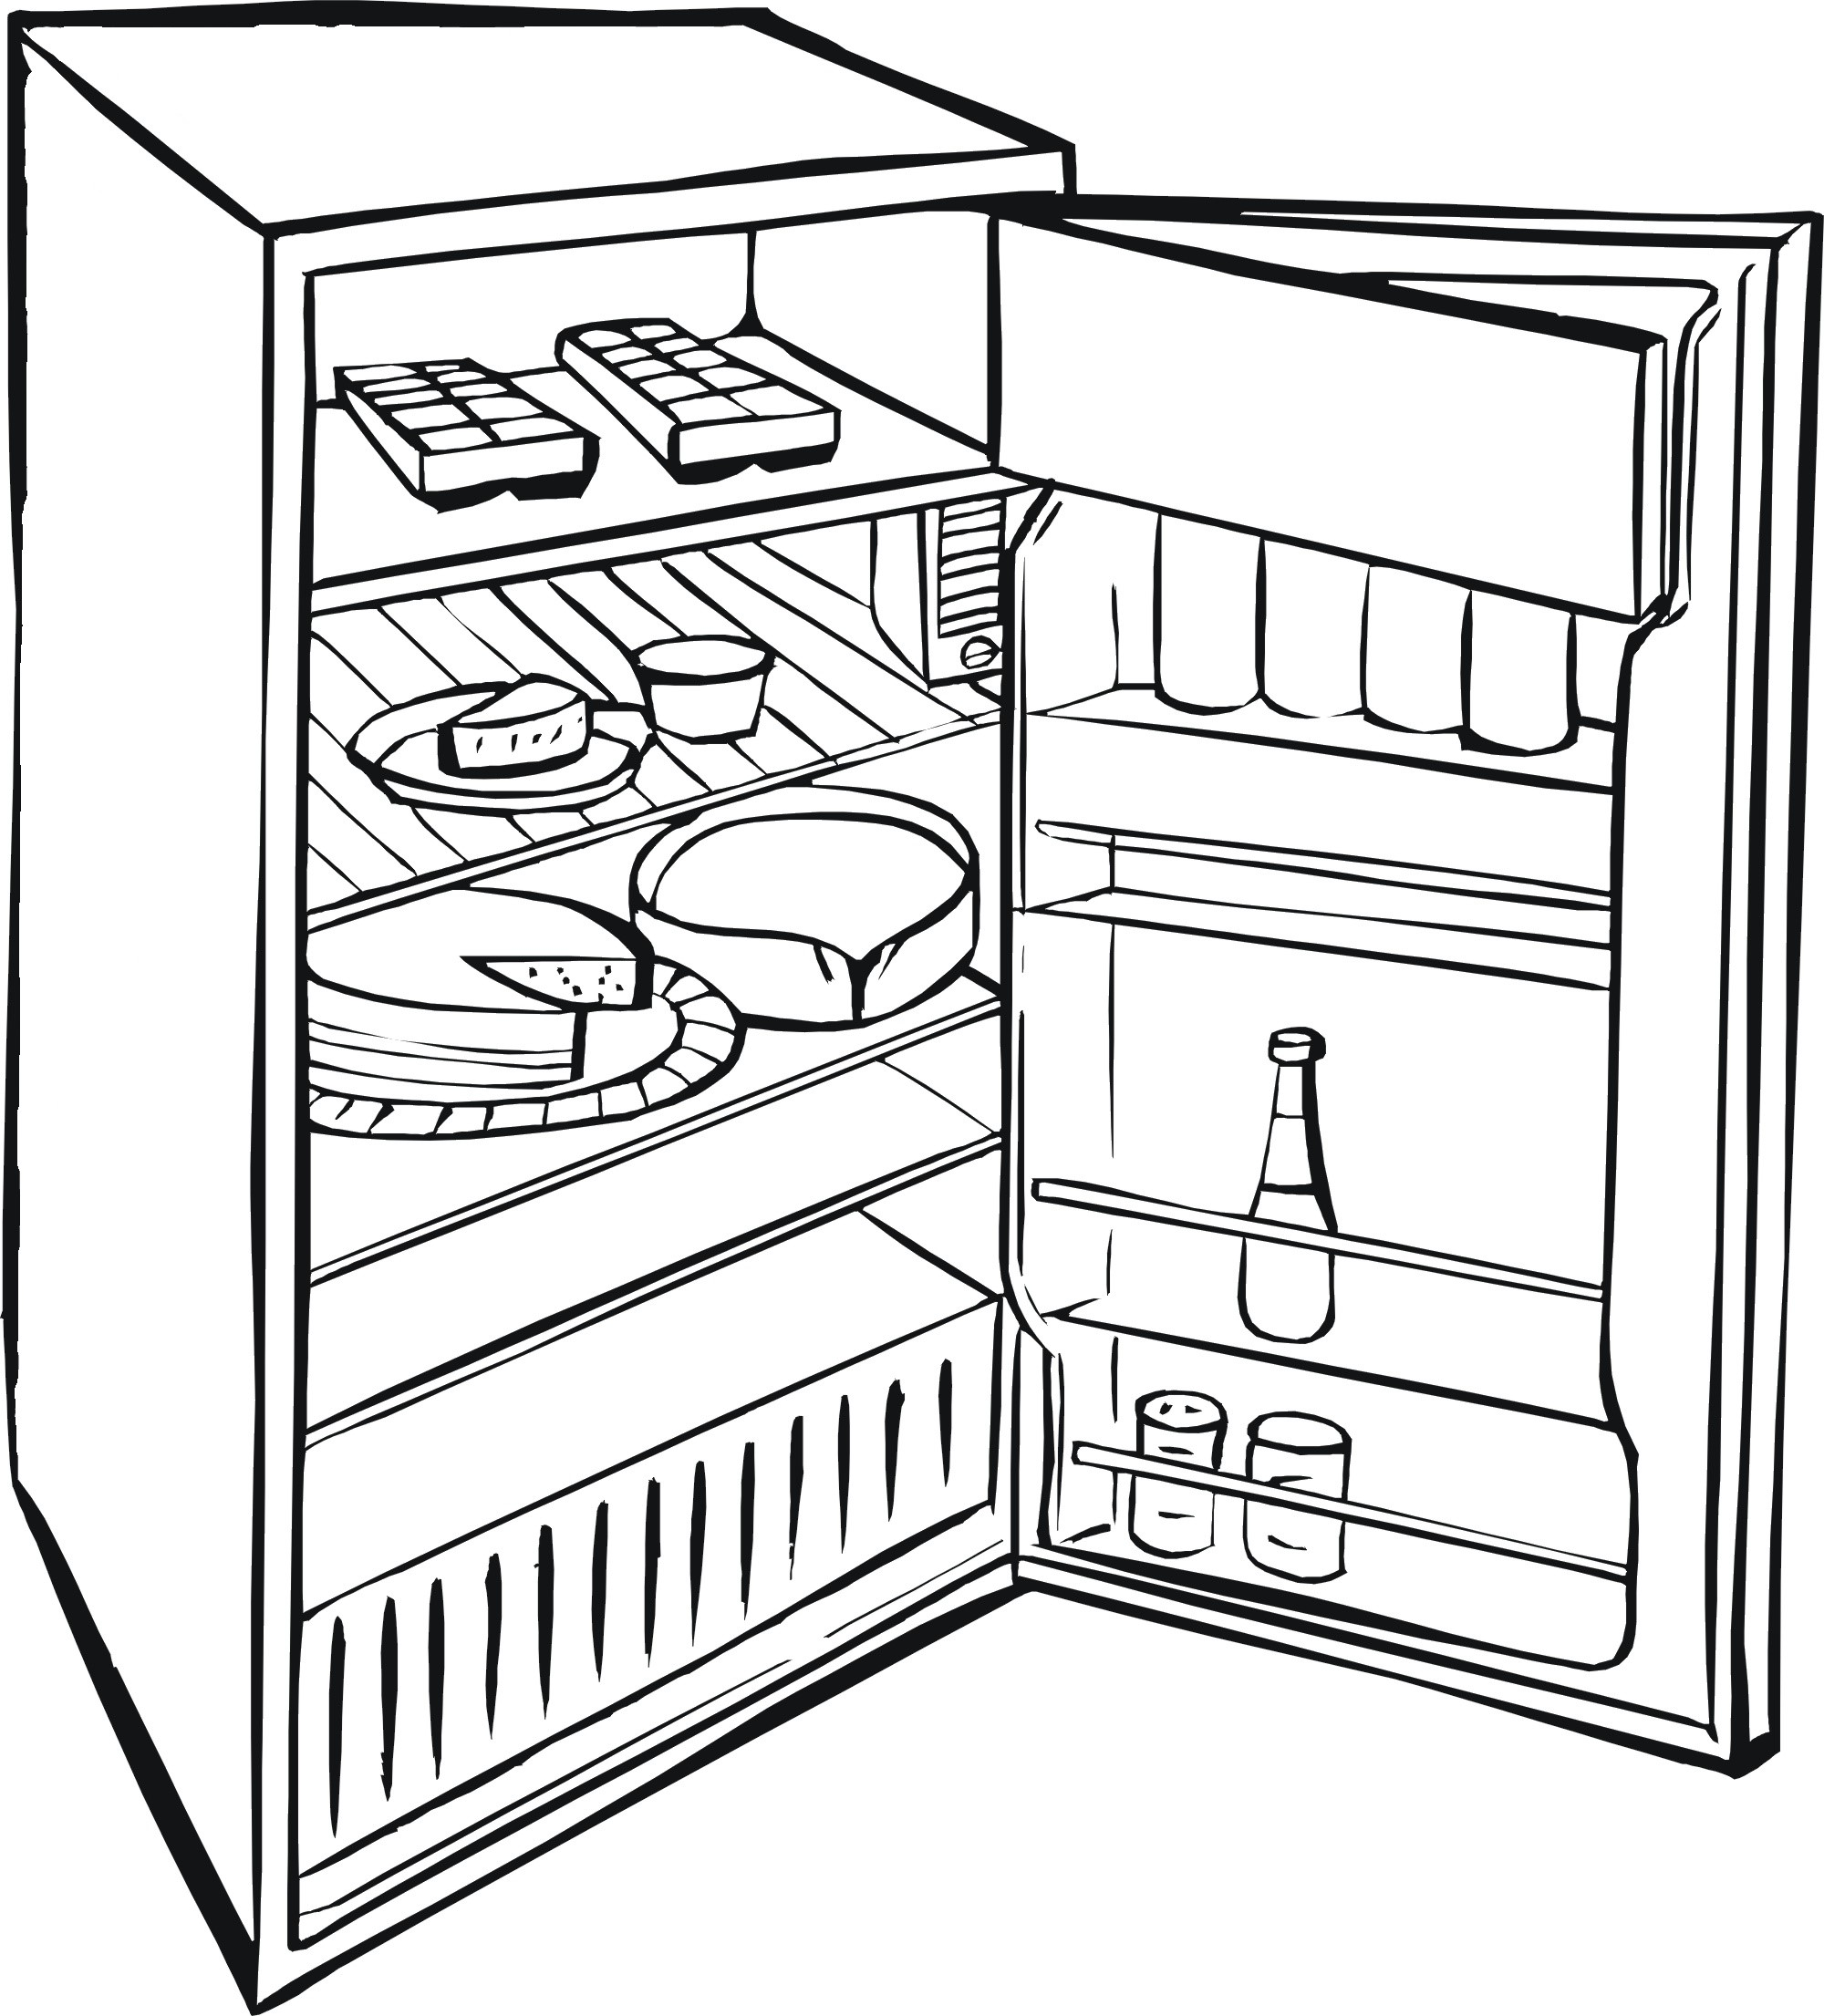 Refrigerator clipart coloring page. Fridge the gallery for